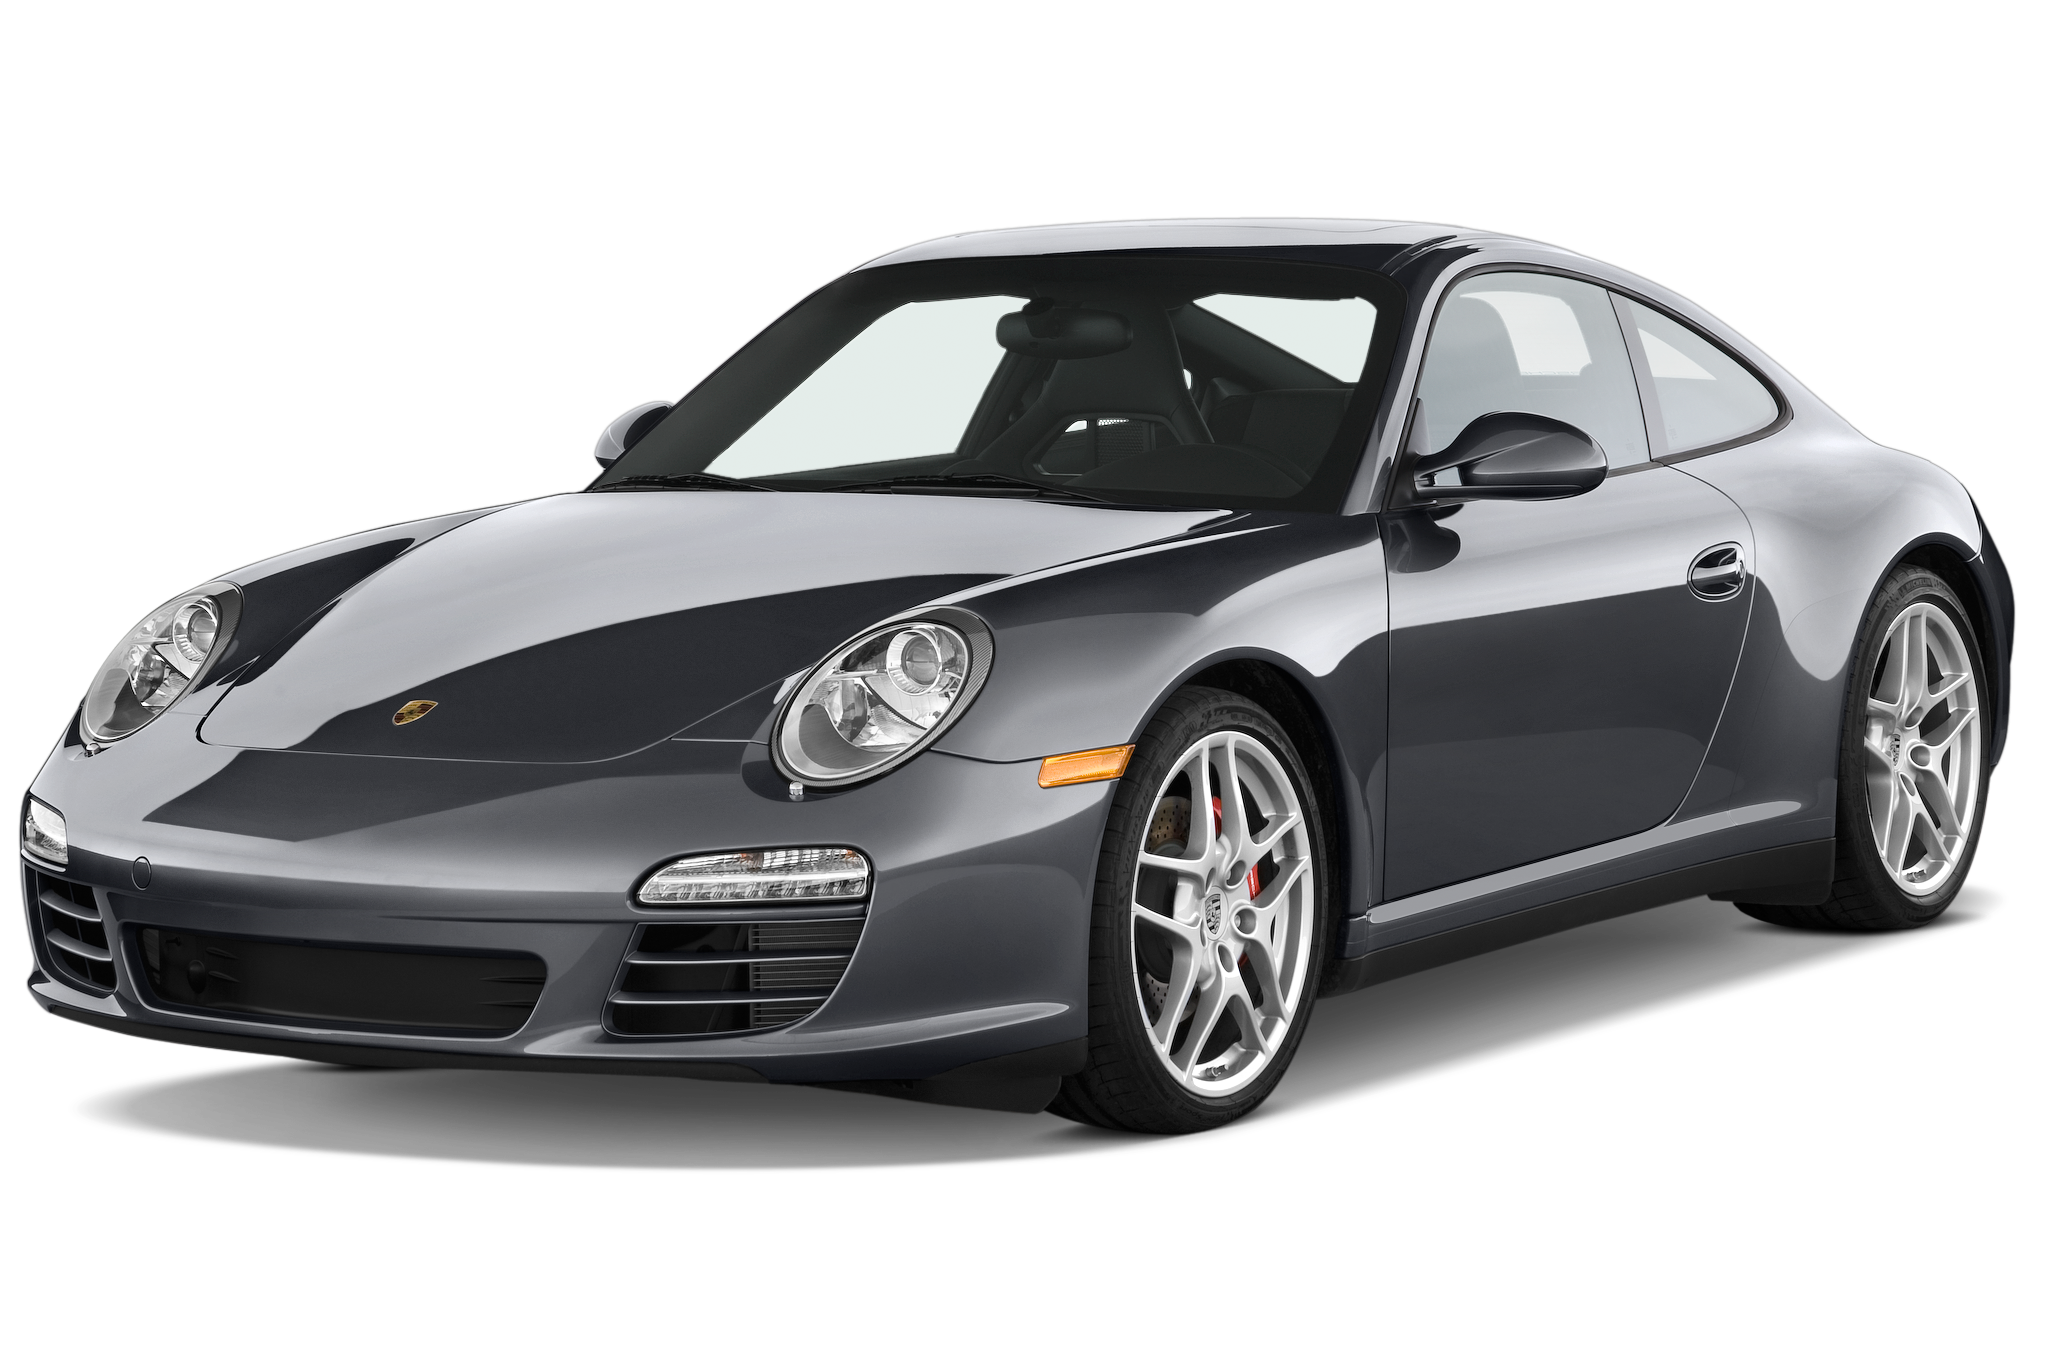 2010 Porsche 911 Carrera 4 Coupe photo - 1